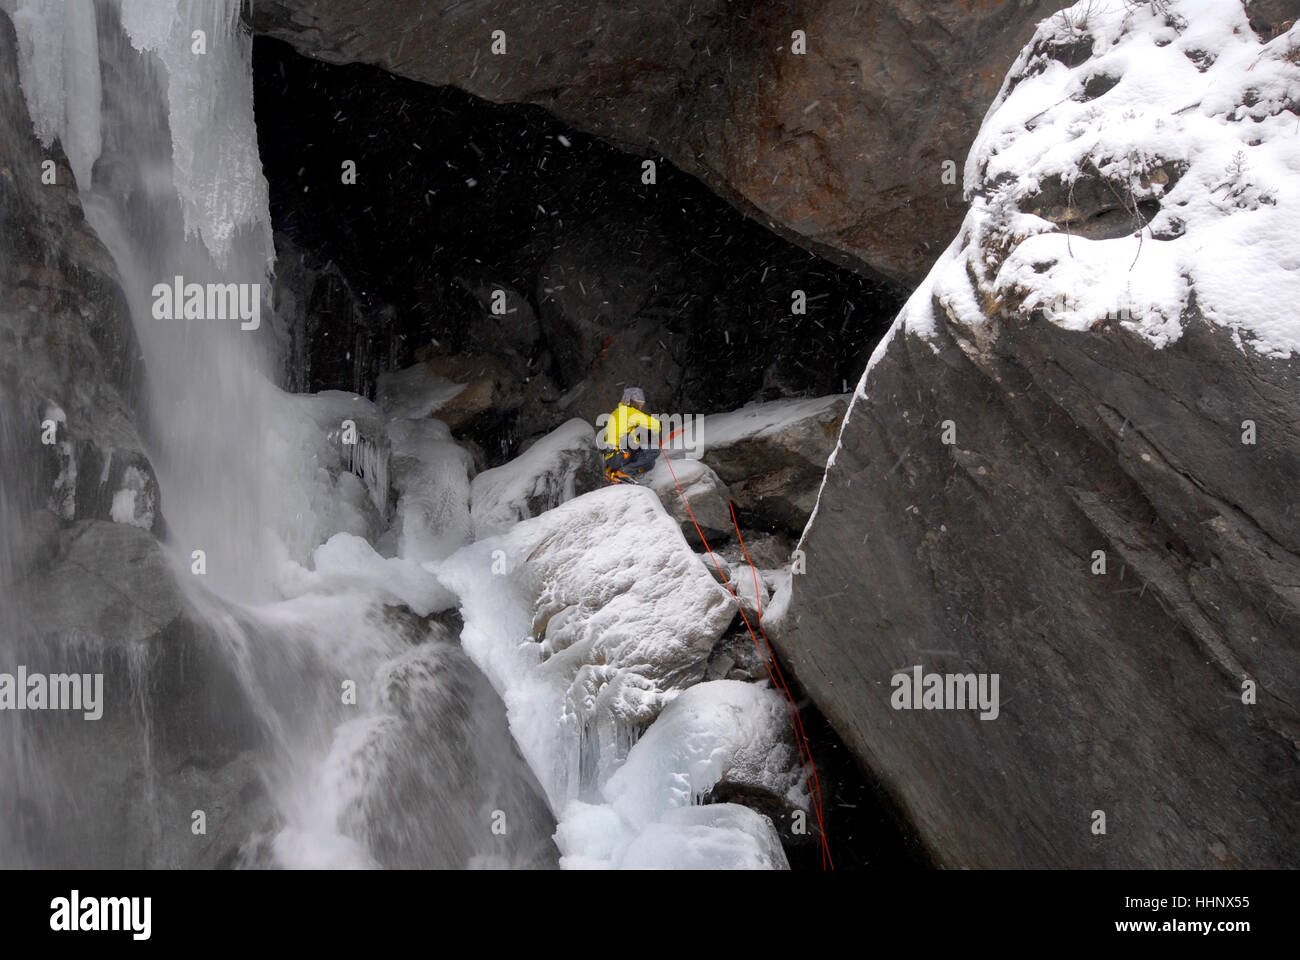 Photographer securing himself in place next to ice climbing route on partially frozen waterfall preparing to photograph Stock Photo